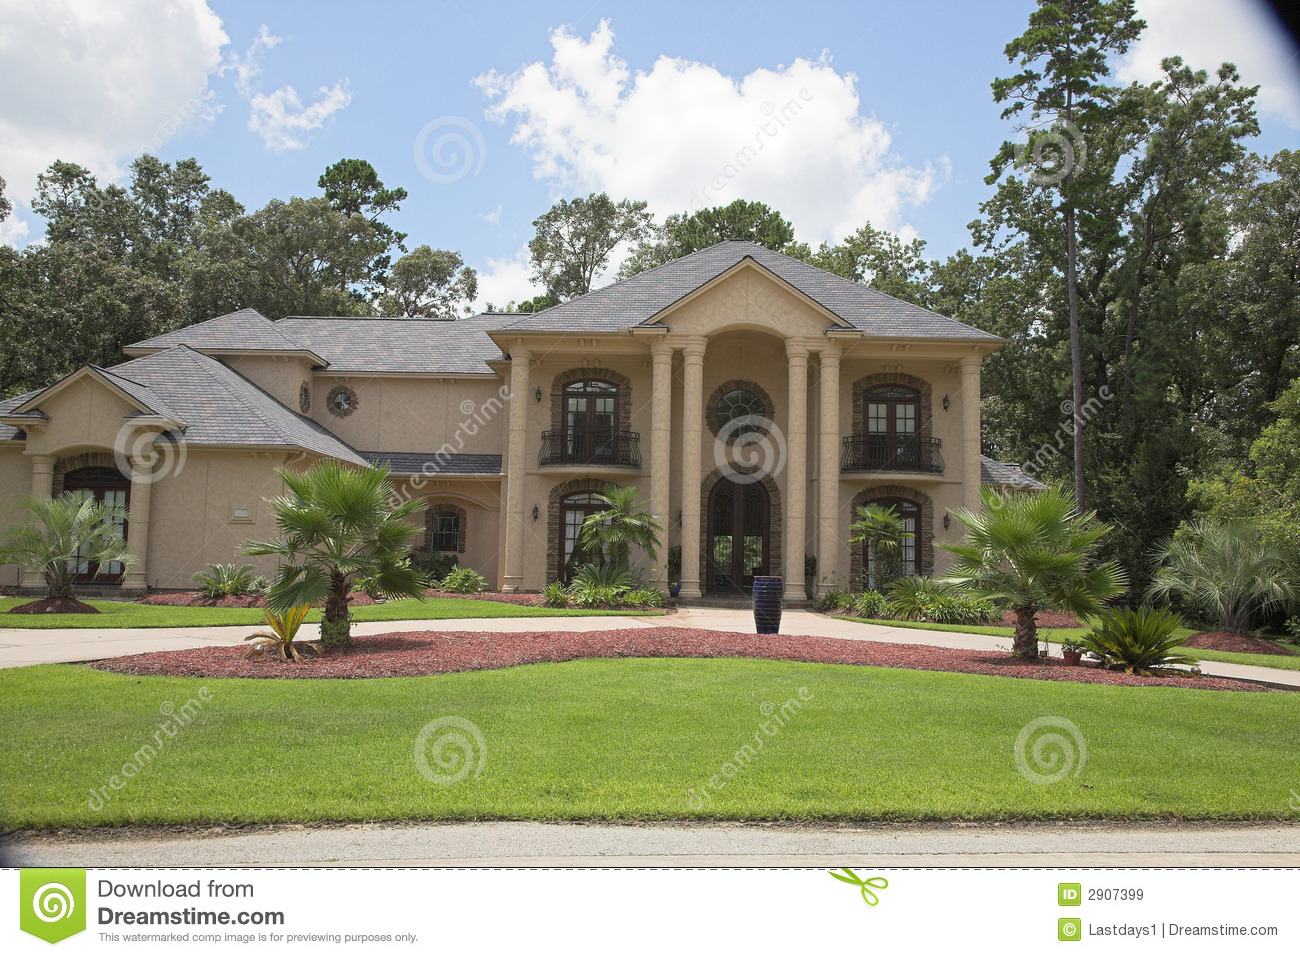 Million Dollar Homes Series Royalty Free Stock Images.